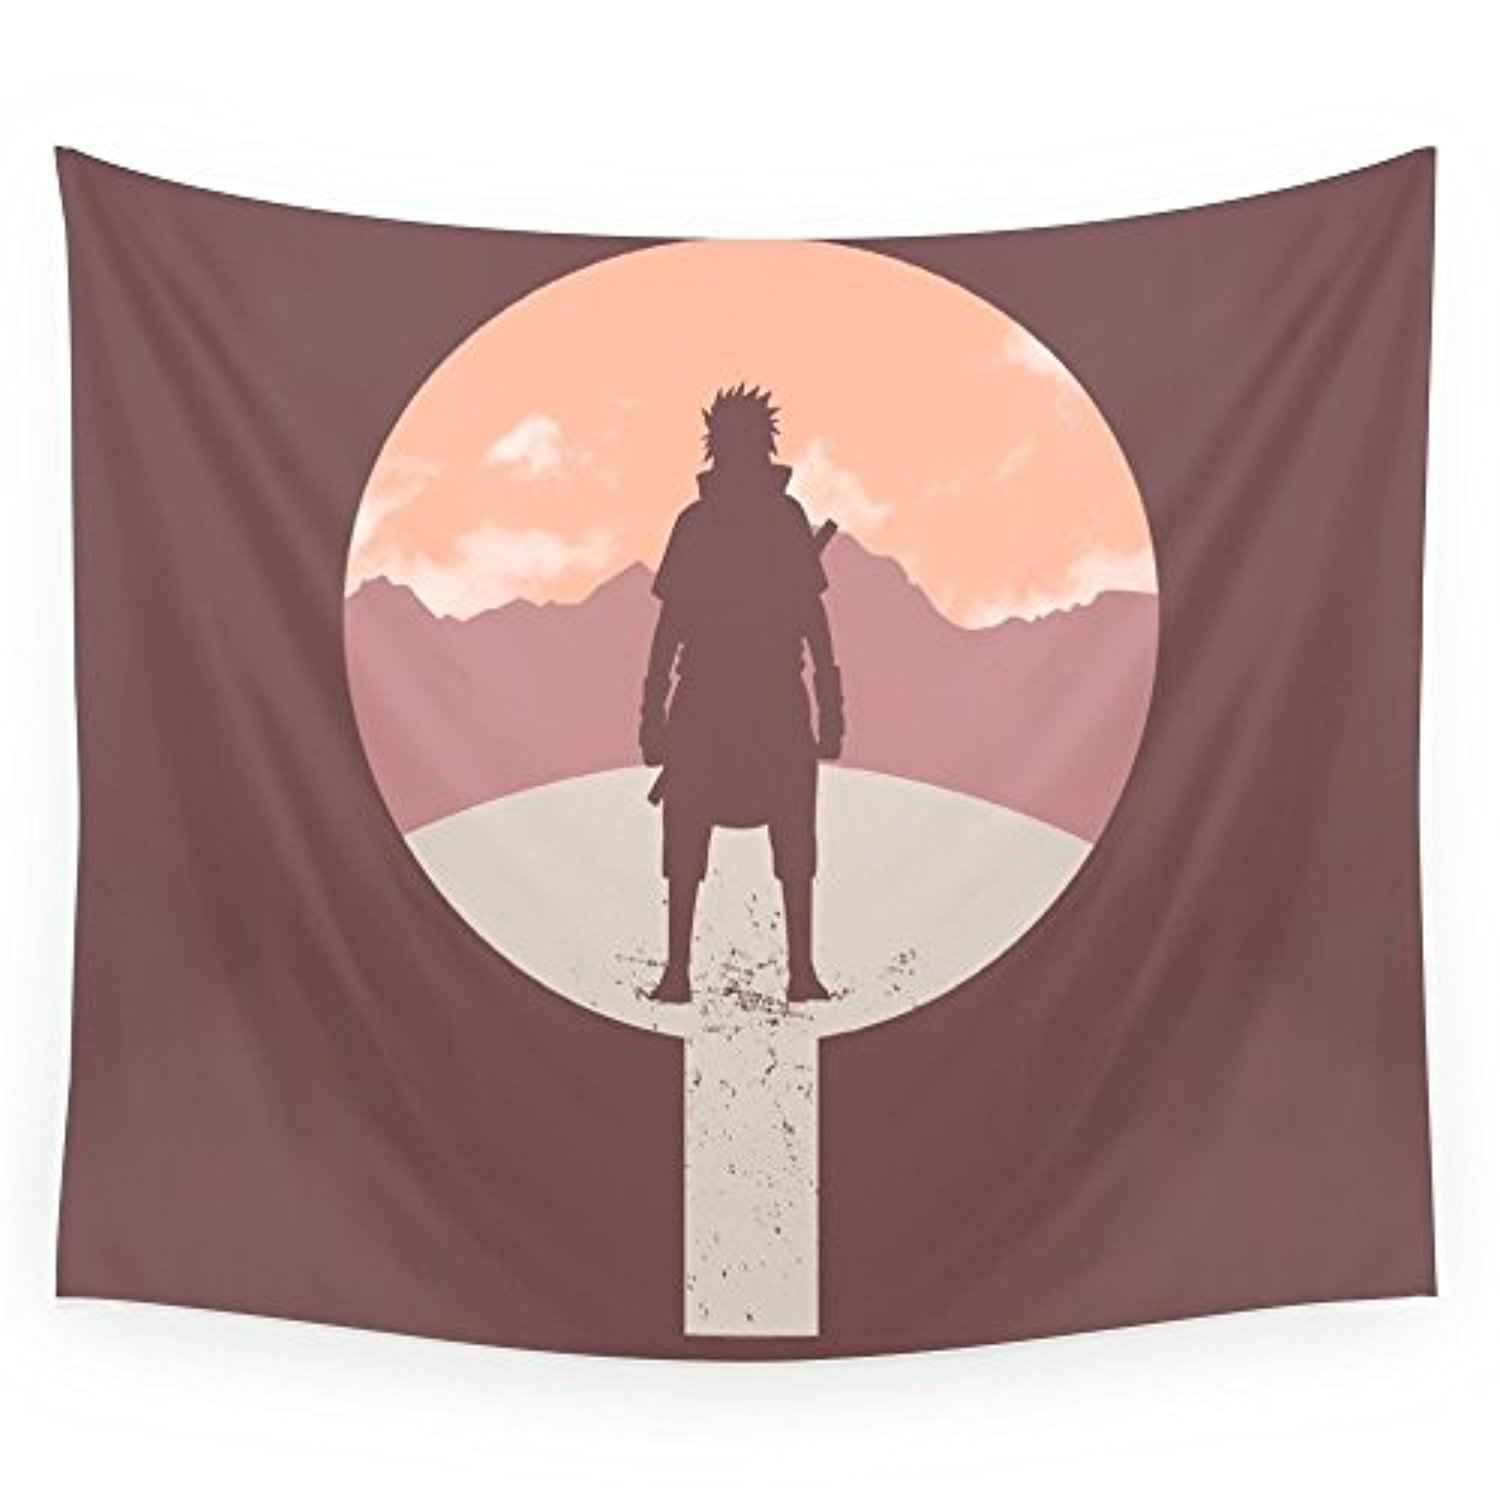 Society6 Crest Of Revenge [Naruto] Wall Tapestry Small: 51""